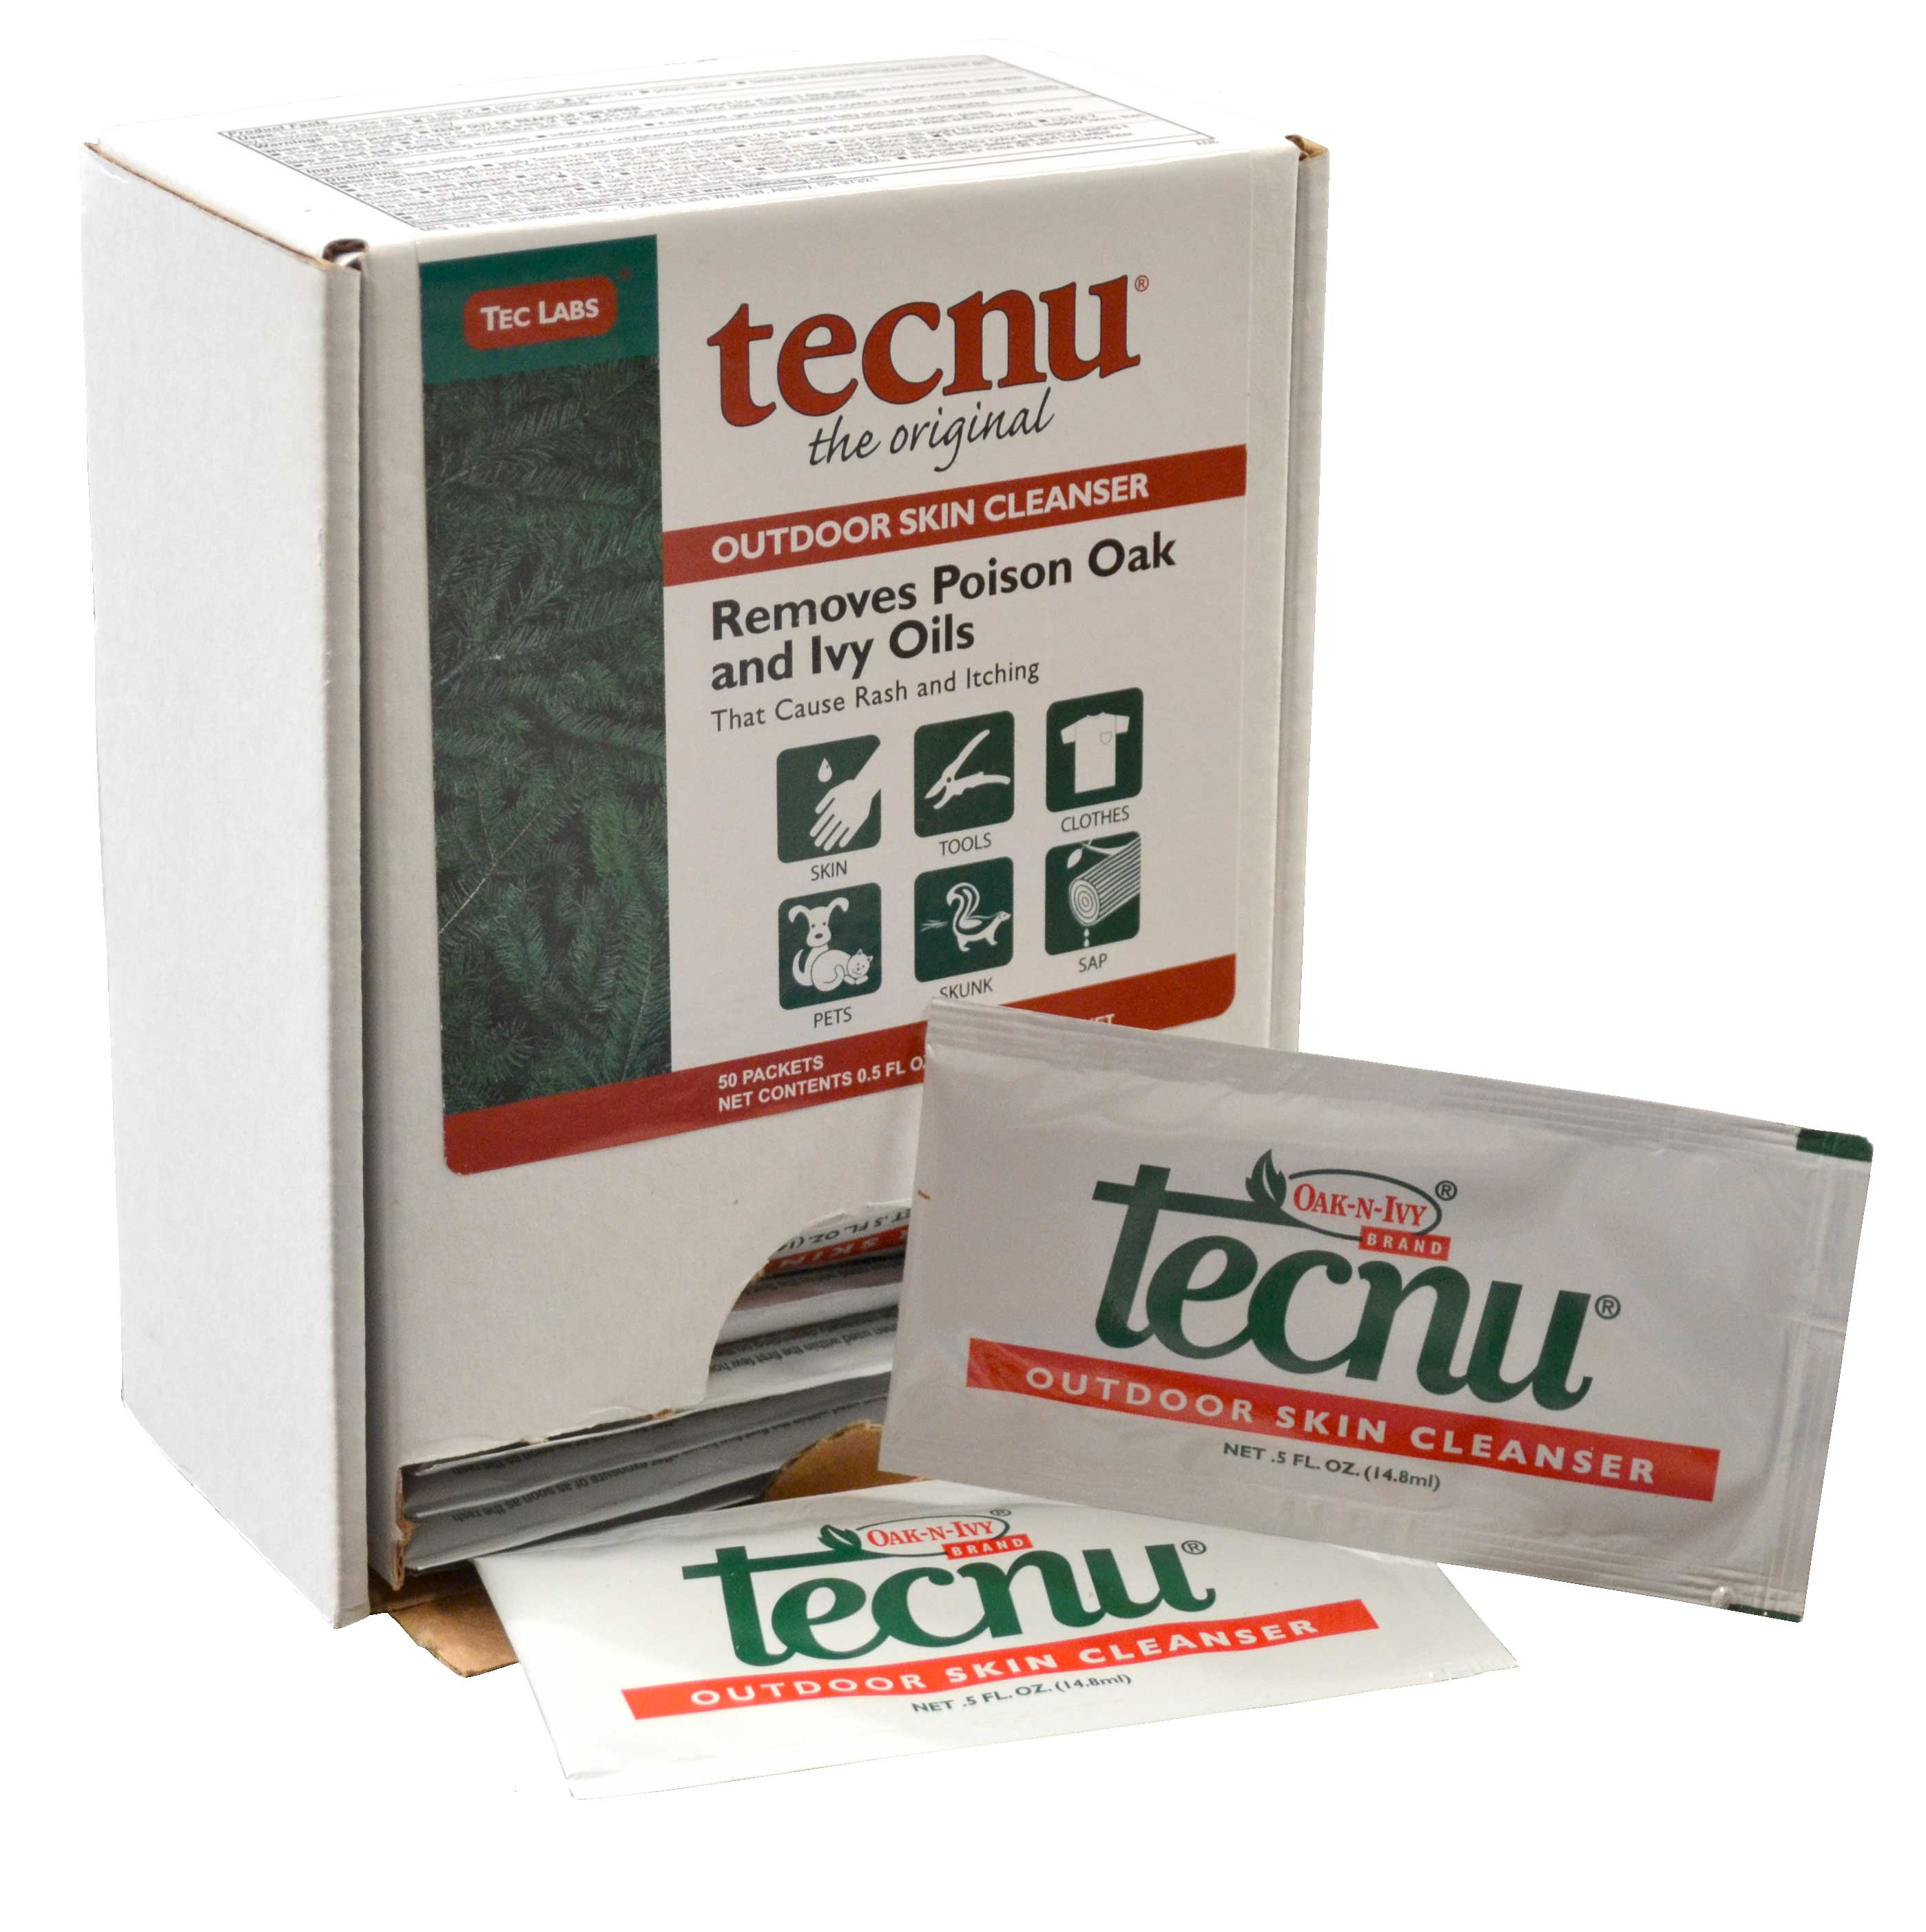 Tecnu Oak-N-Ivy Brand Outdoor Skin Cleanser Box with 50 Packets